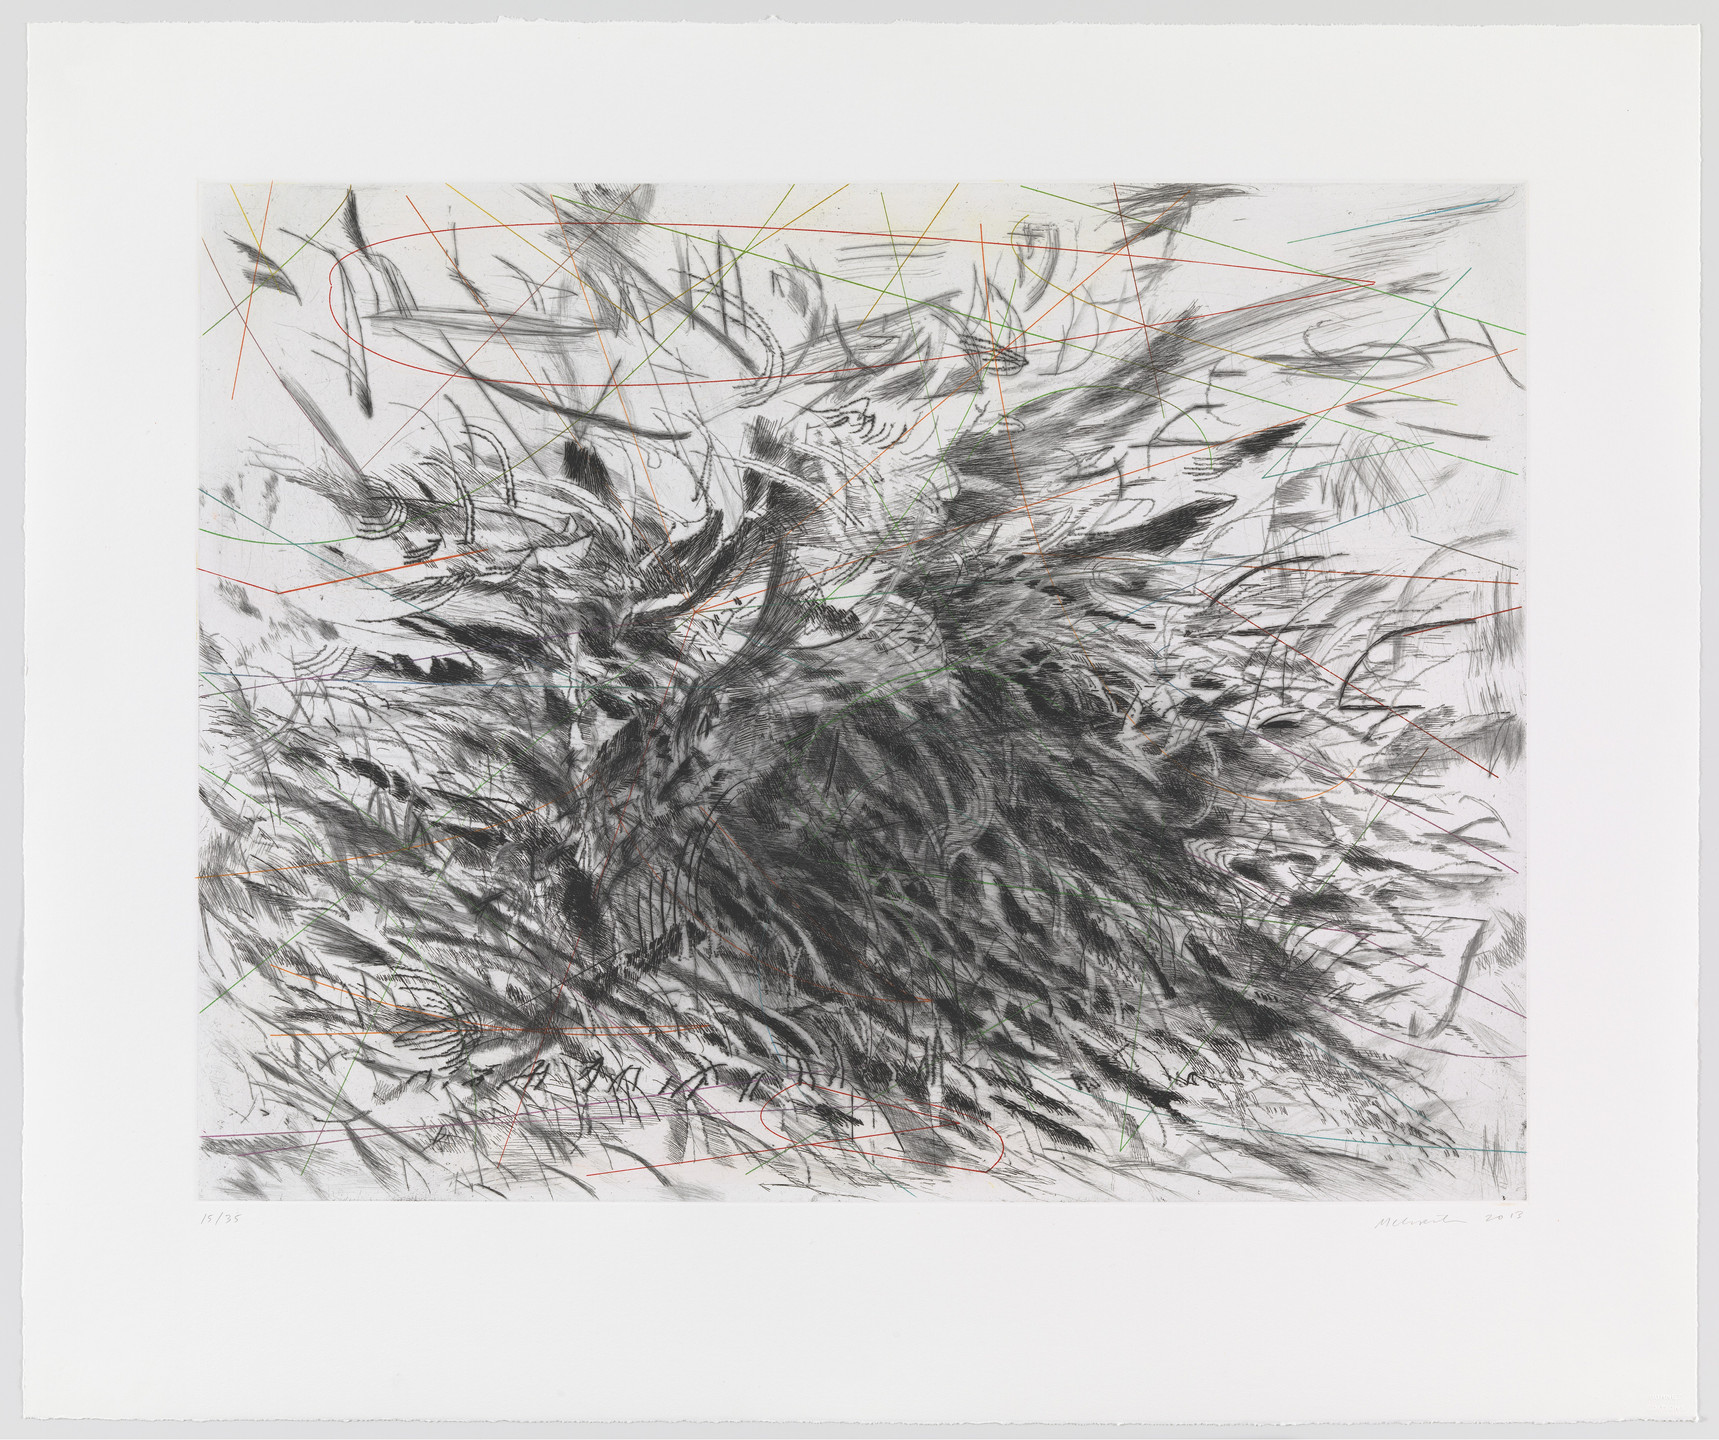 Julie Mehretu. Untitled from Algorithms, Apparitions and Translations. 2013